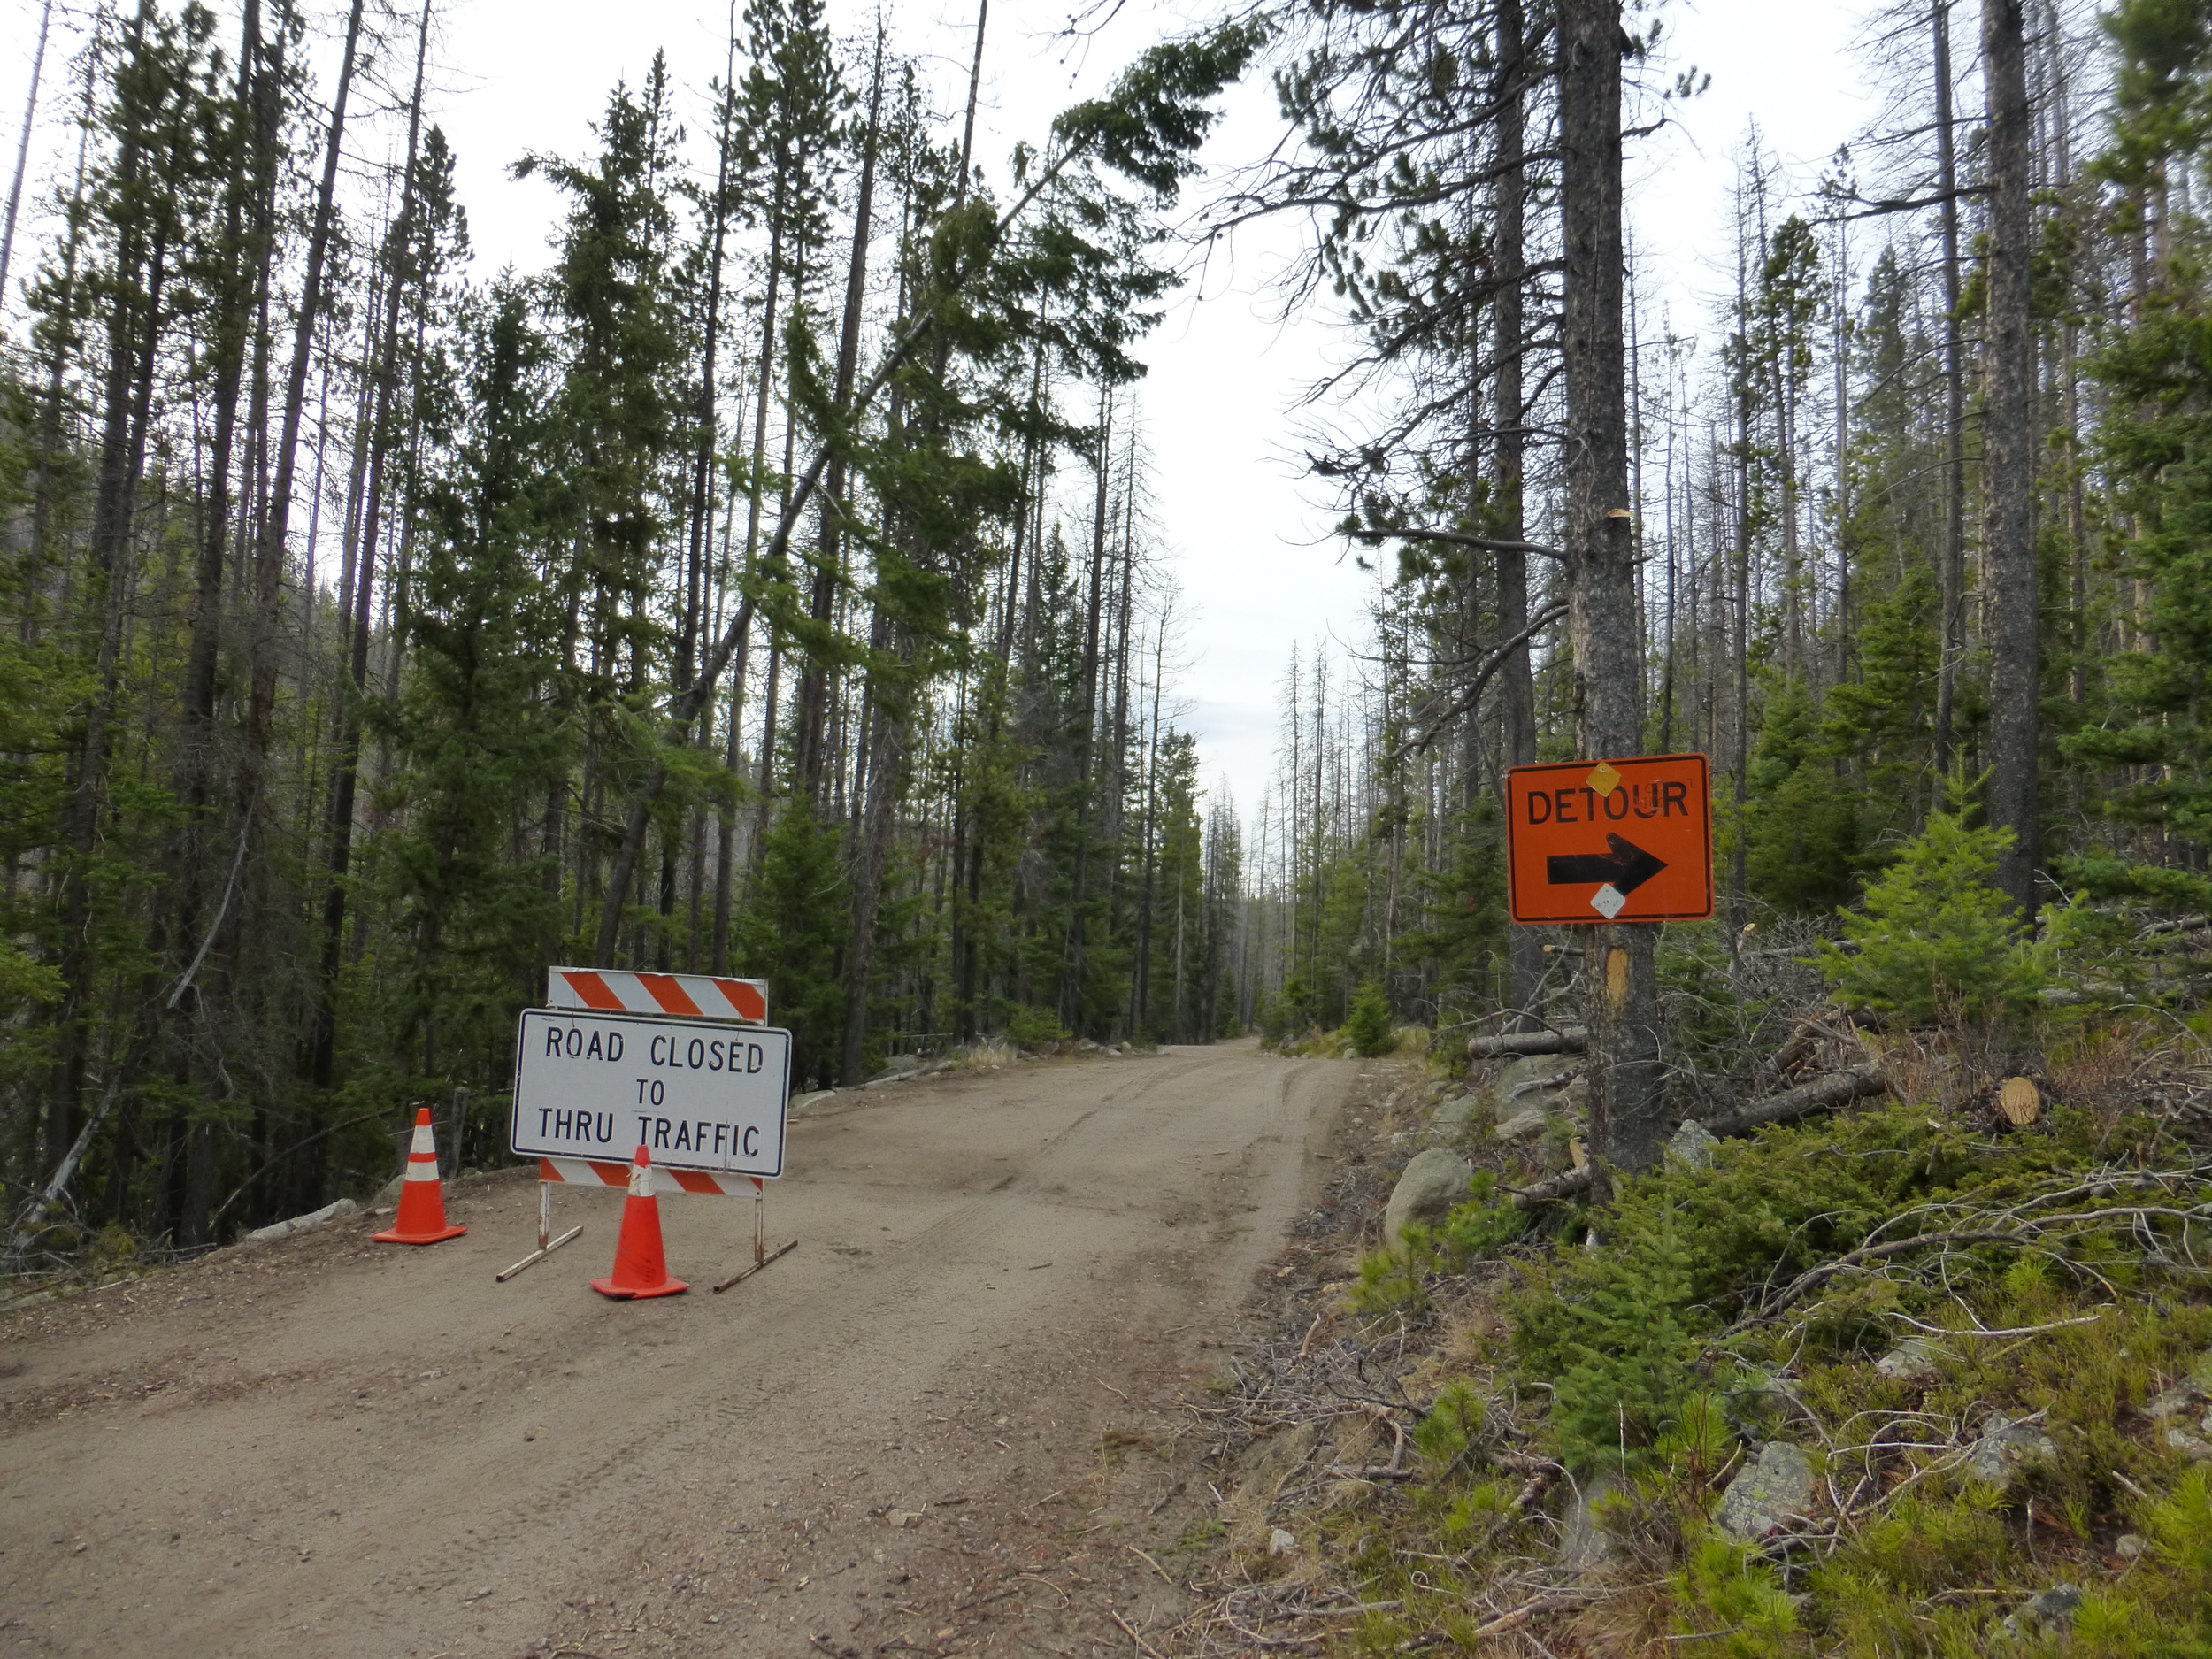 Road Closed. The detour was an additional 8miles (uphill too). How bad could it be?